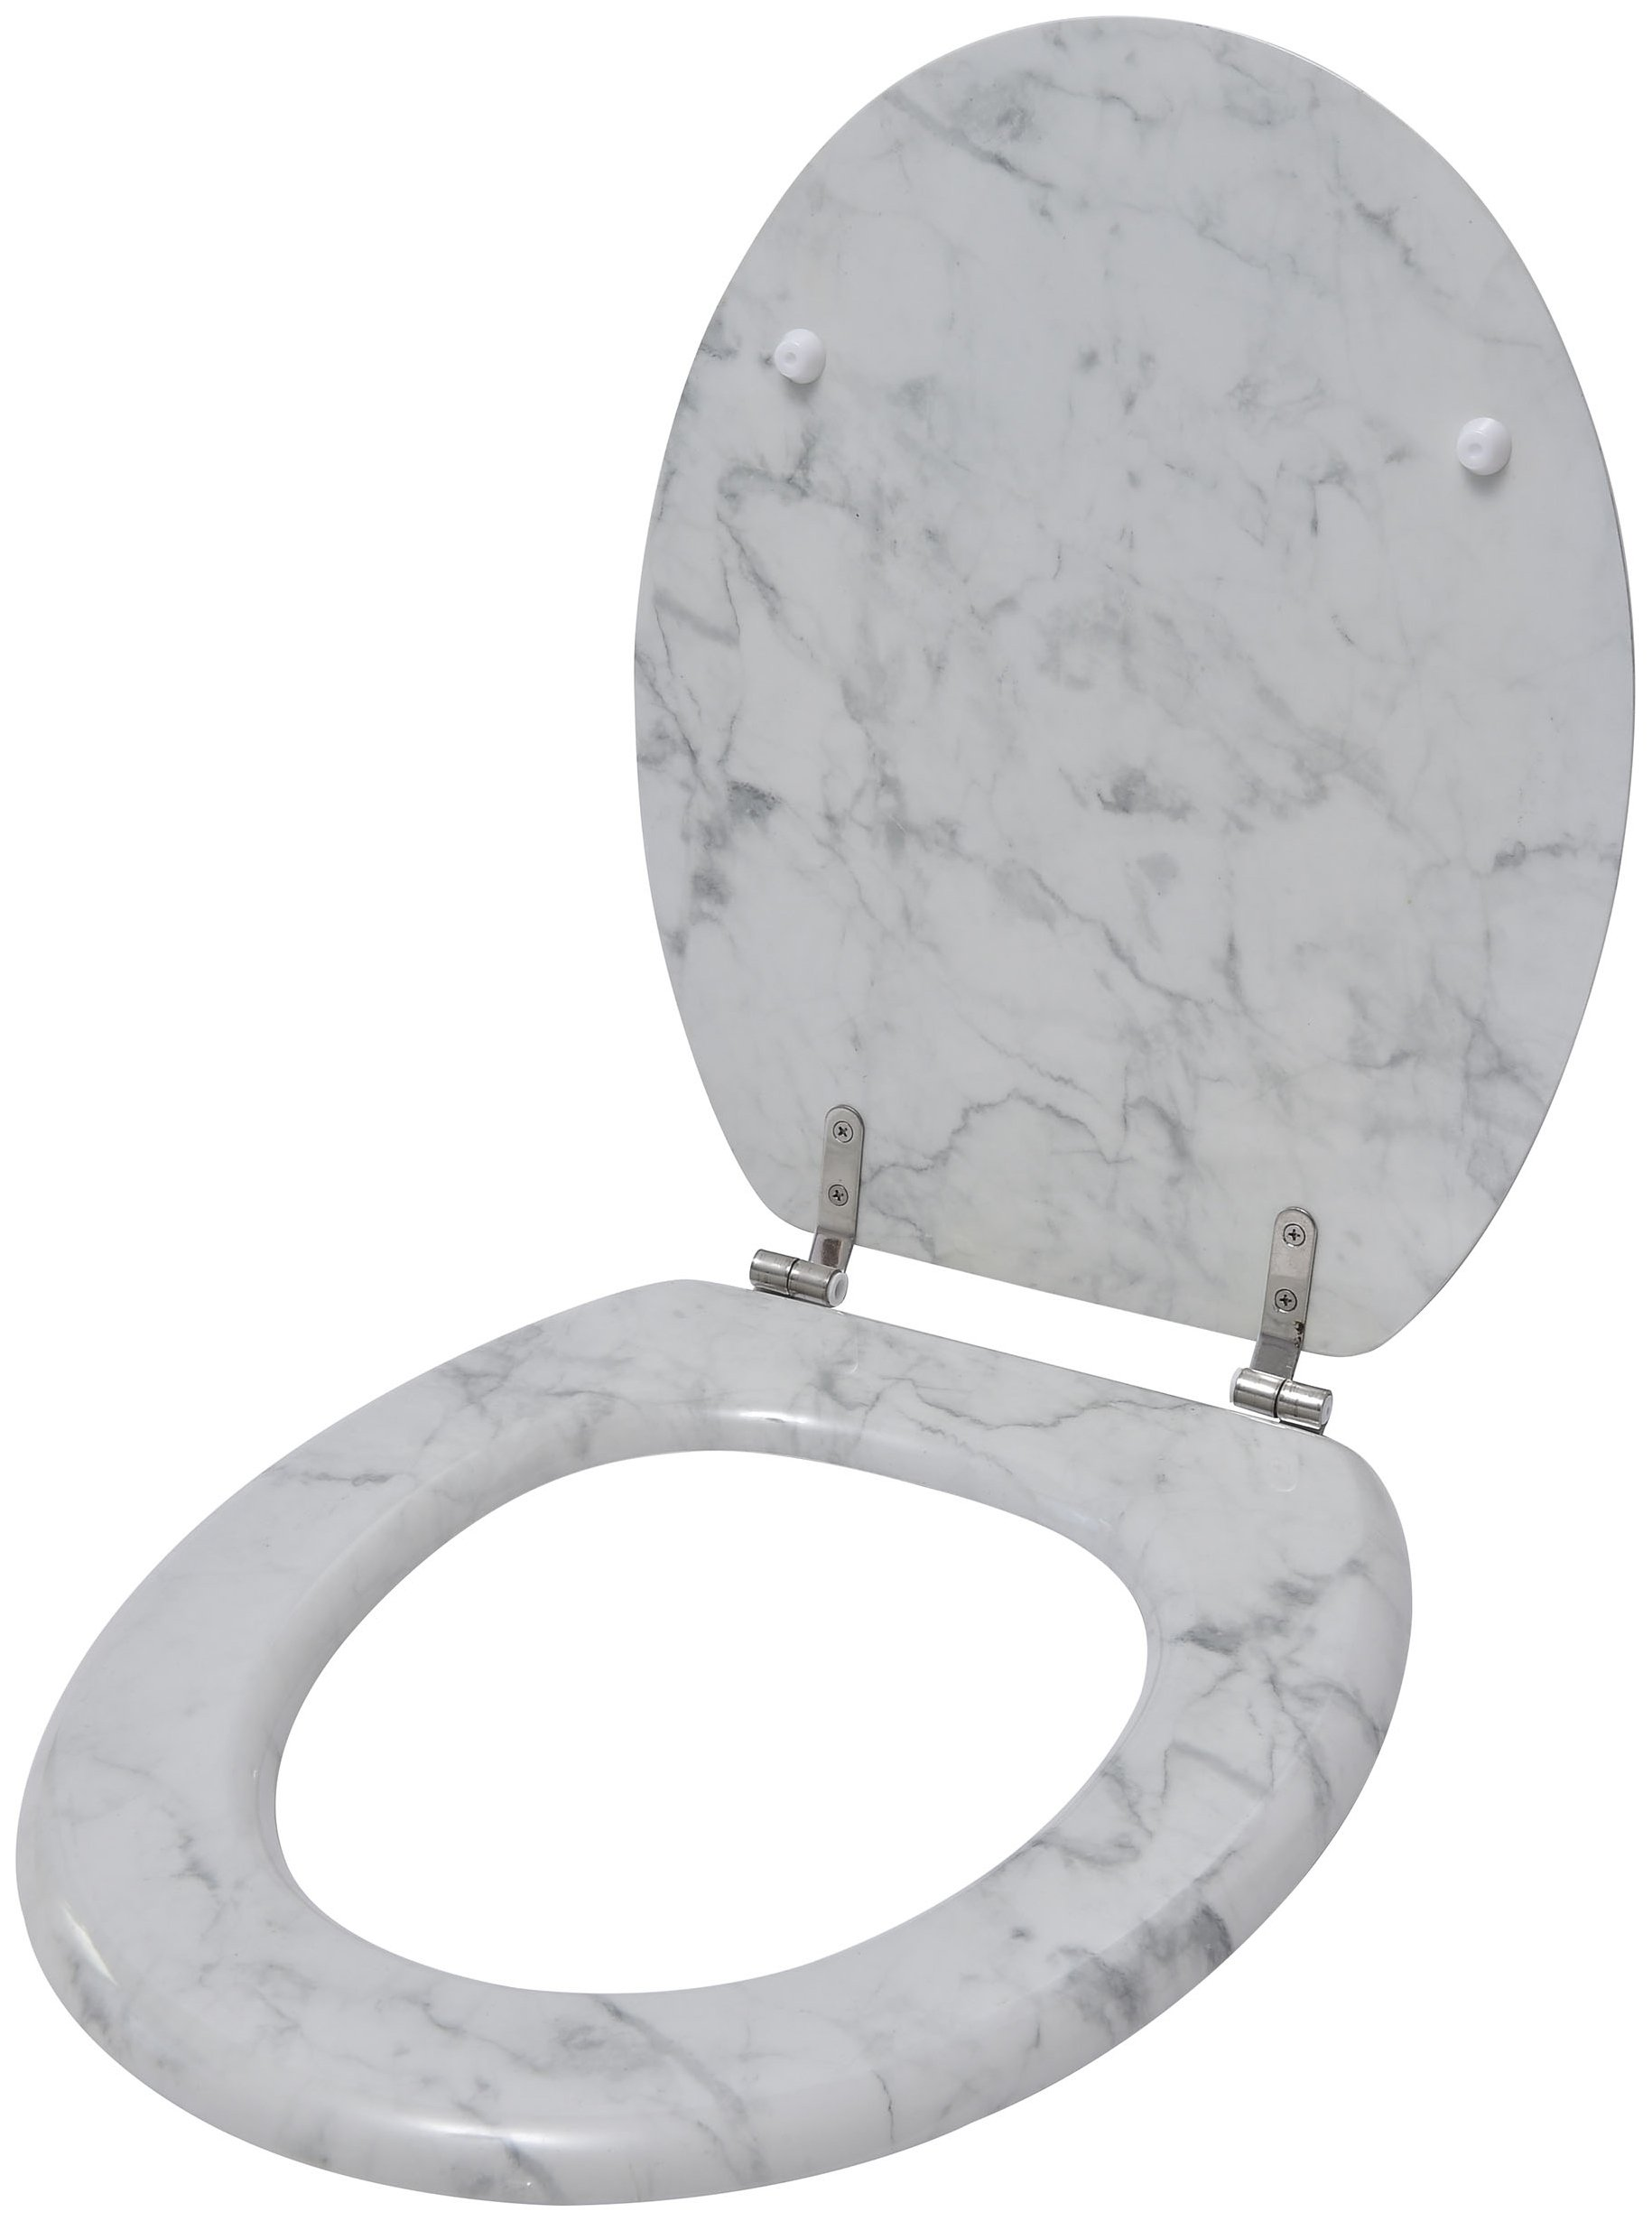 EVIDECO 4109602 Marble Effect Toilet Seat, Ivory